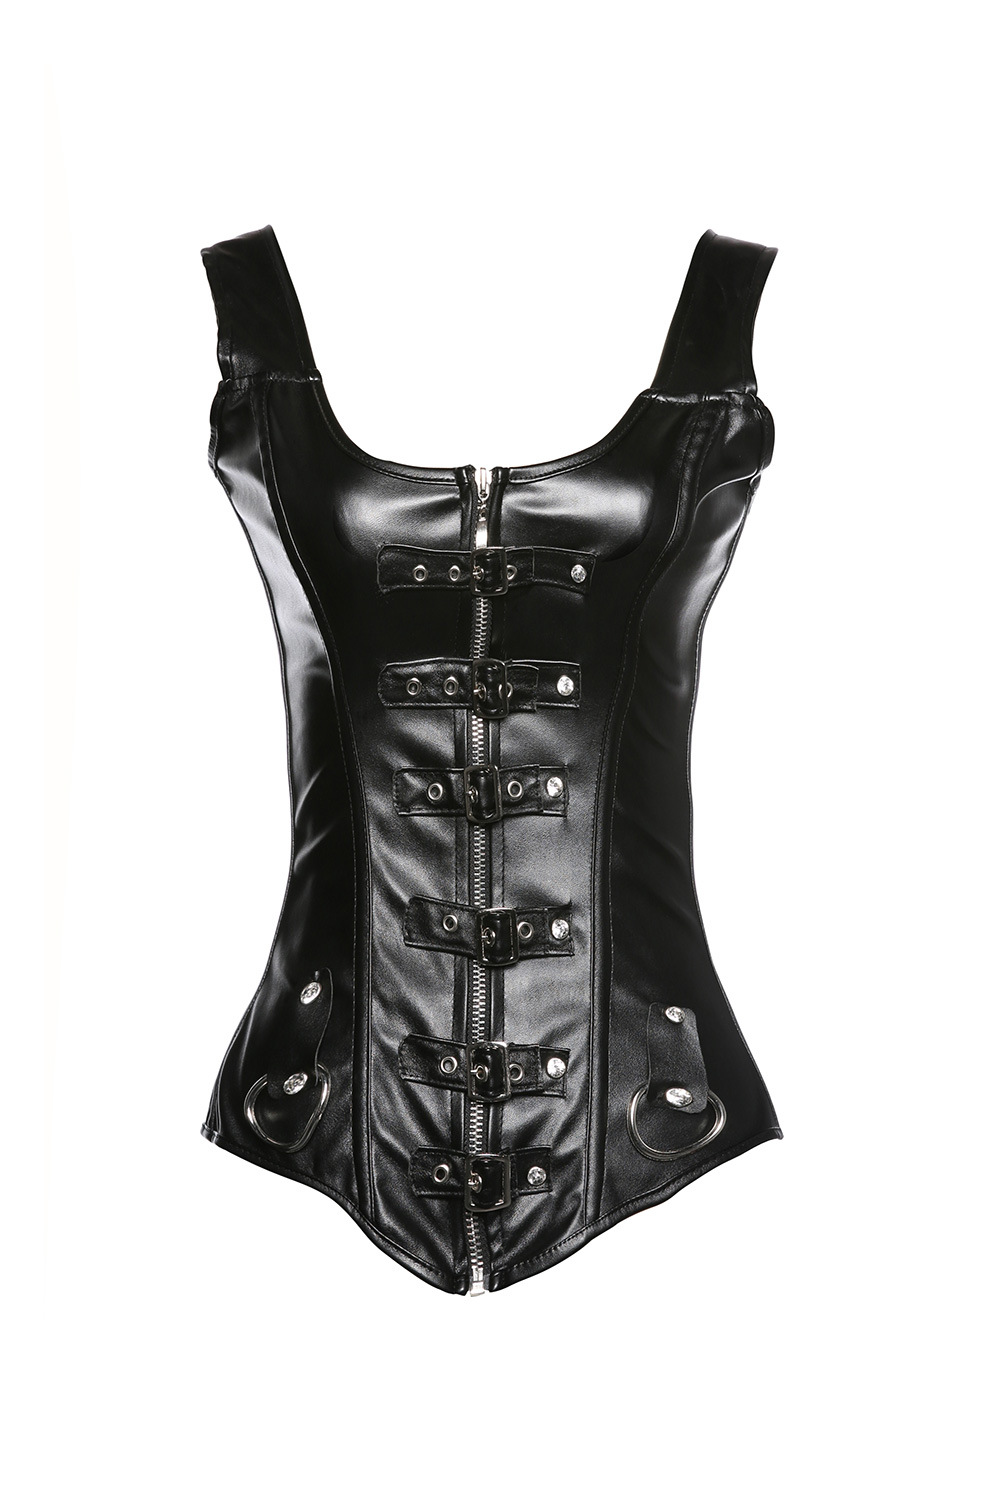 Black Faux Leather   Corset   PVC   Corset   Steampunk   Corsets   and   Bustiers   Corsetto Zipper Gothic   Corsets   Corselet 918